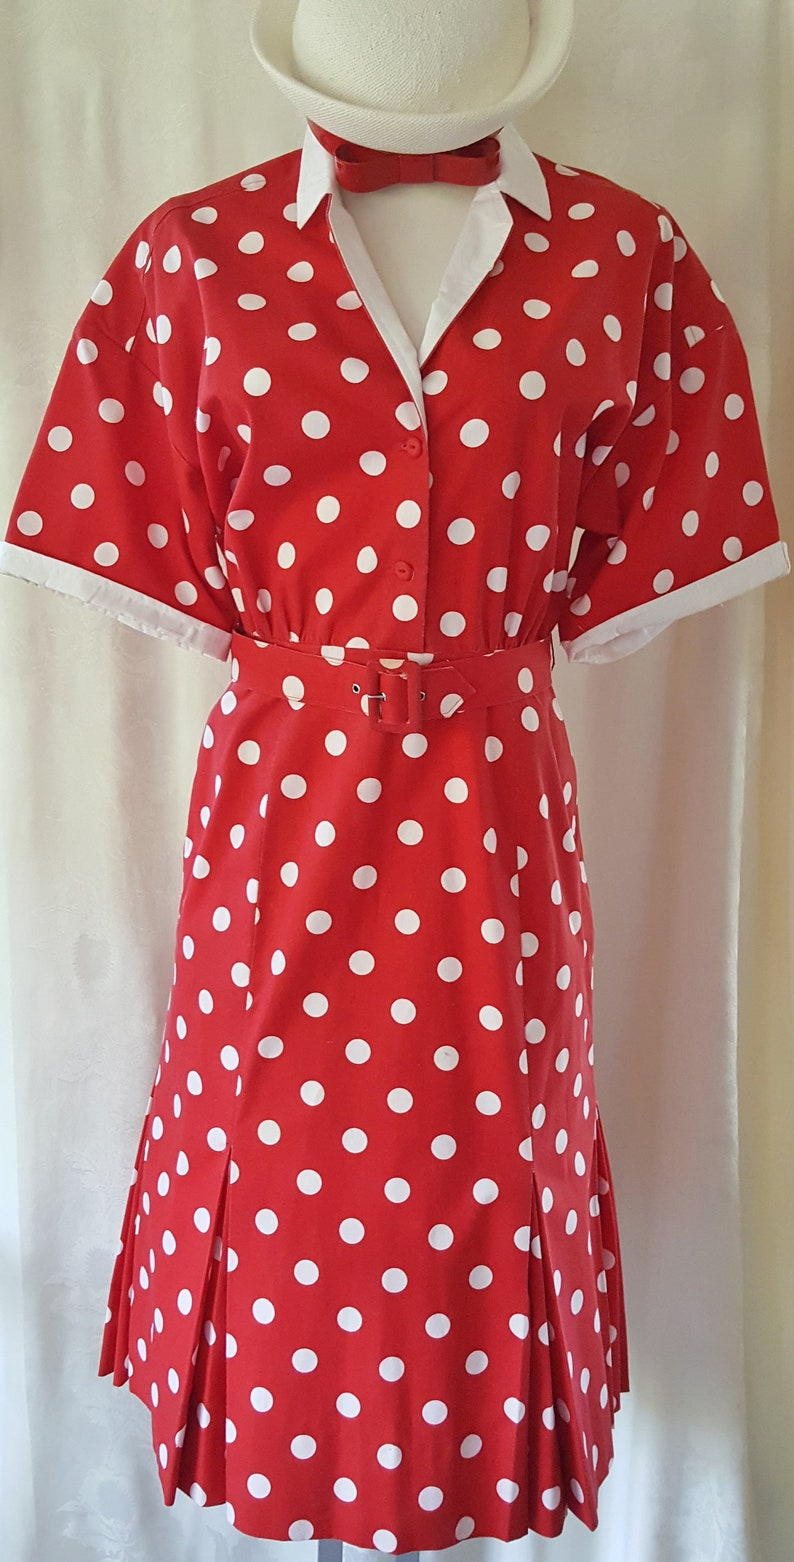 500 Vintage Style Dresses for Sale | Vintage Inspired Dresses HAPPY Polka Dot Dress 1960s SophisticatedLaRue $72.00 AT vintagedancer.com